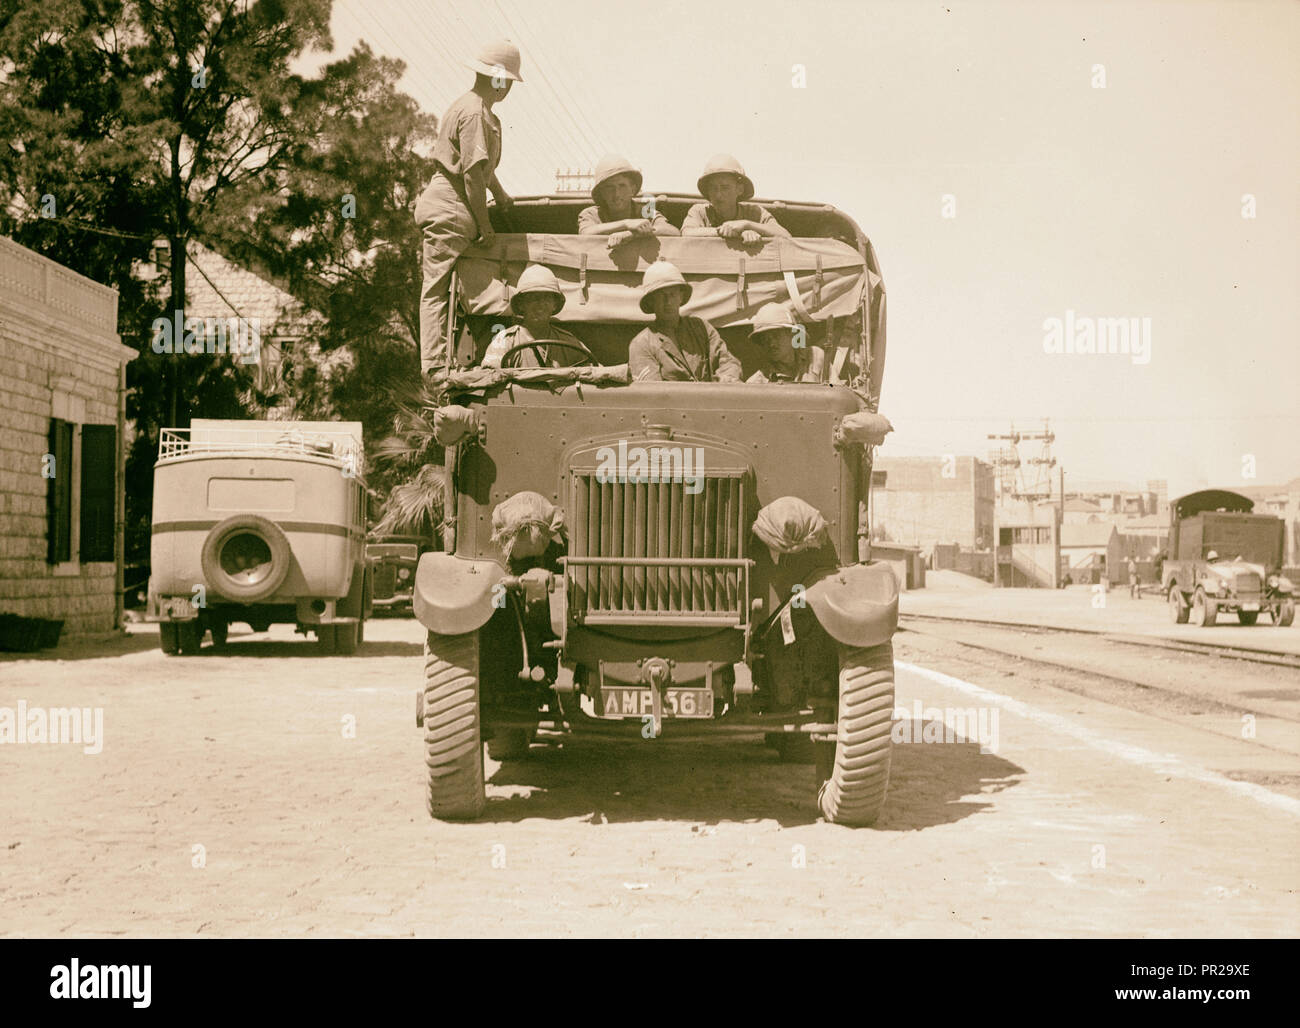 Palestine disturbances 1936. Army lorry, one of the many brought on above mentioned ships. 1936 - Stock Image